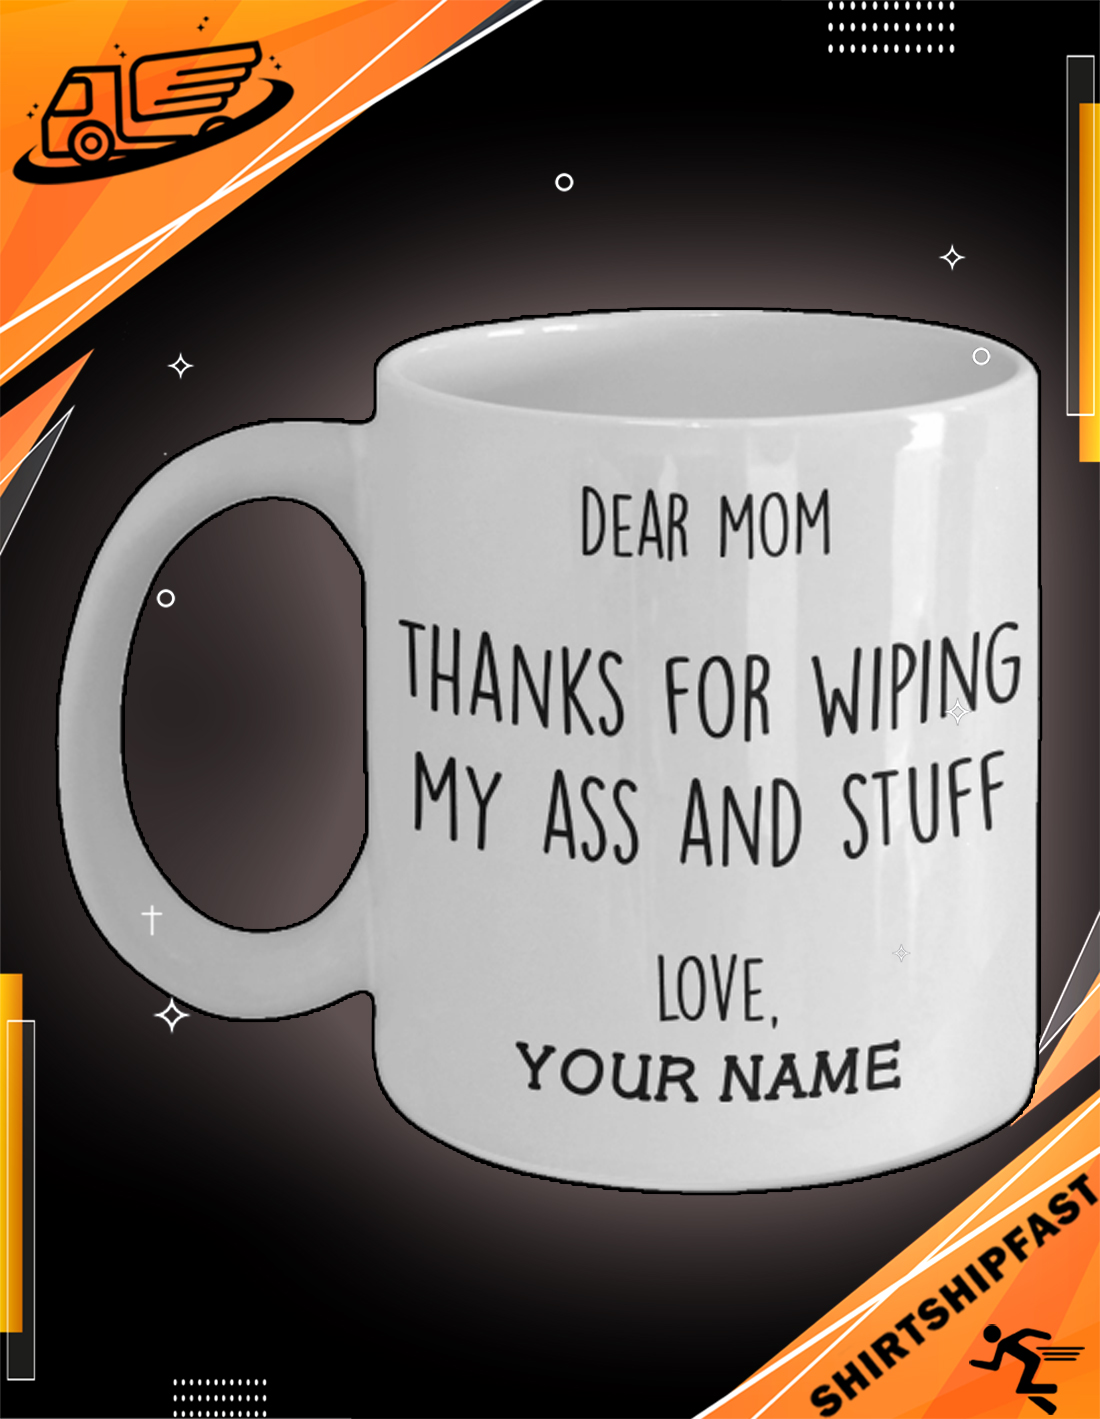 Dear mom thanks for wiping my ass and stuff love custom name mug - Picture 3